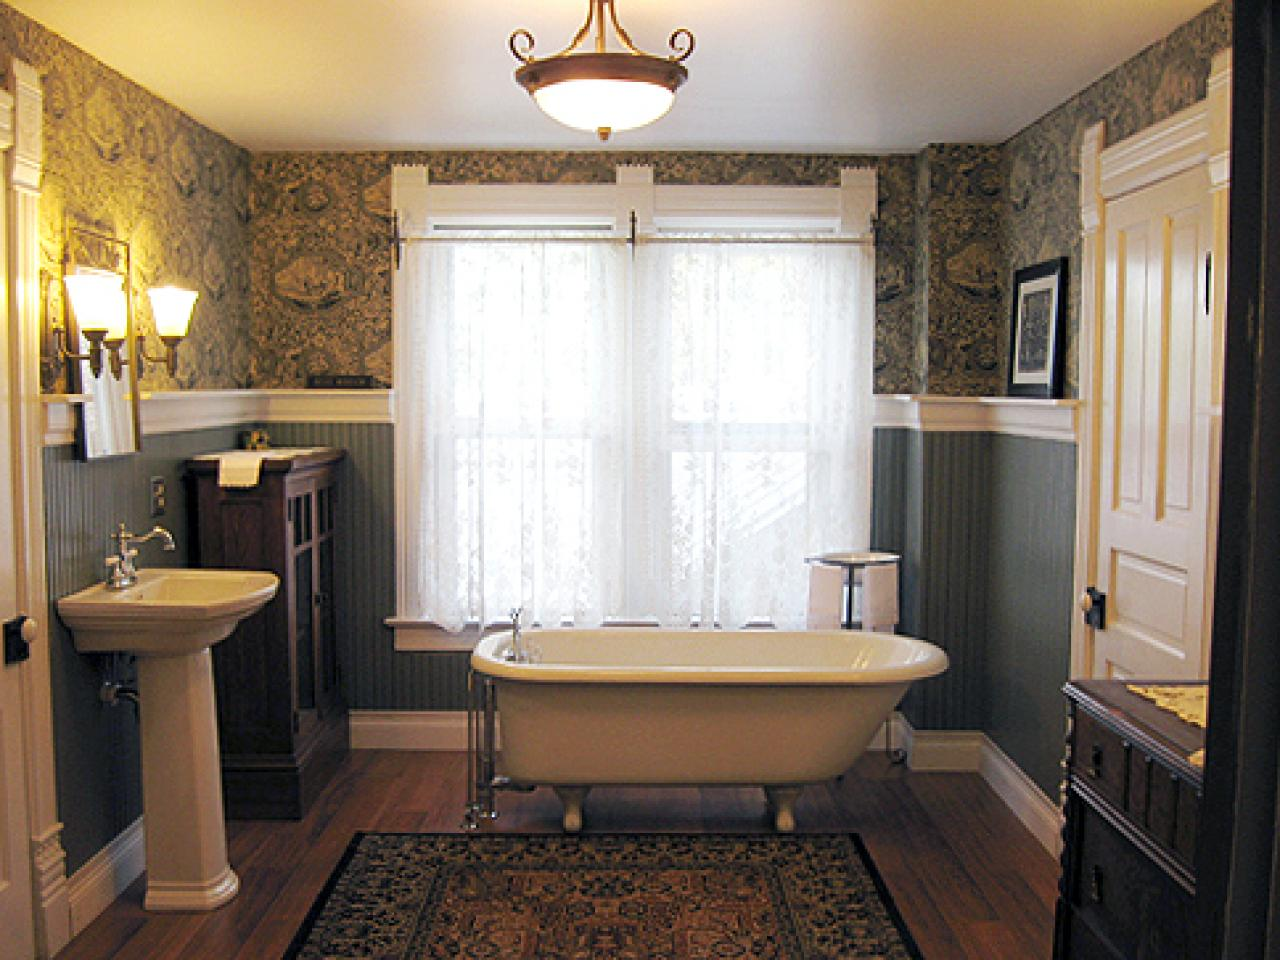 RMS_Mrsd Victorian Bath Redo After_s4x3.rend.hgtvcom.